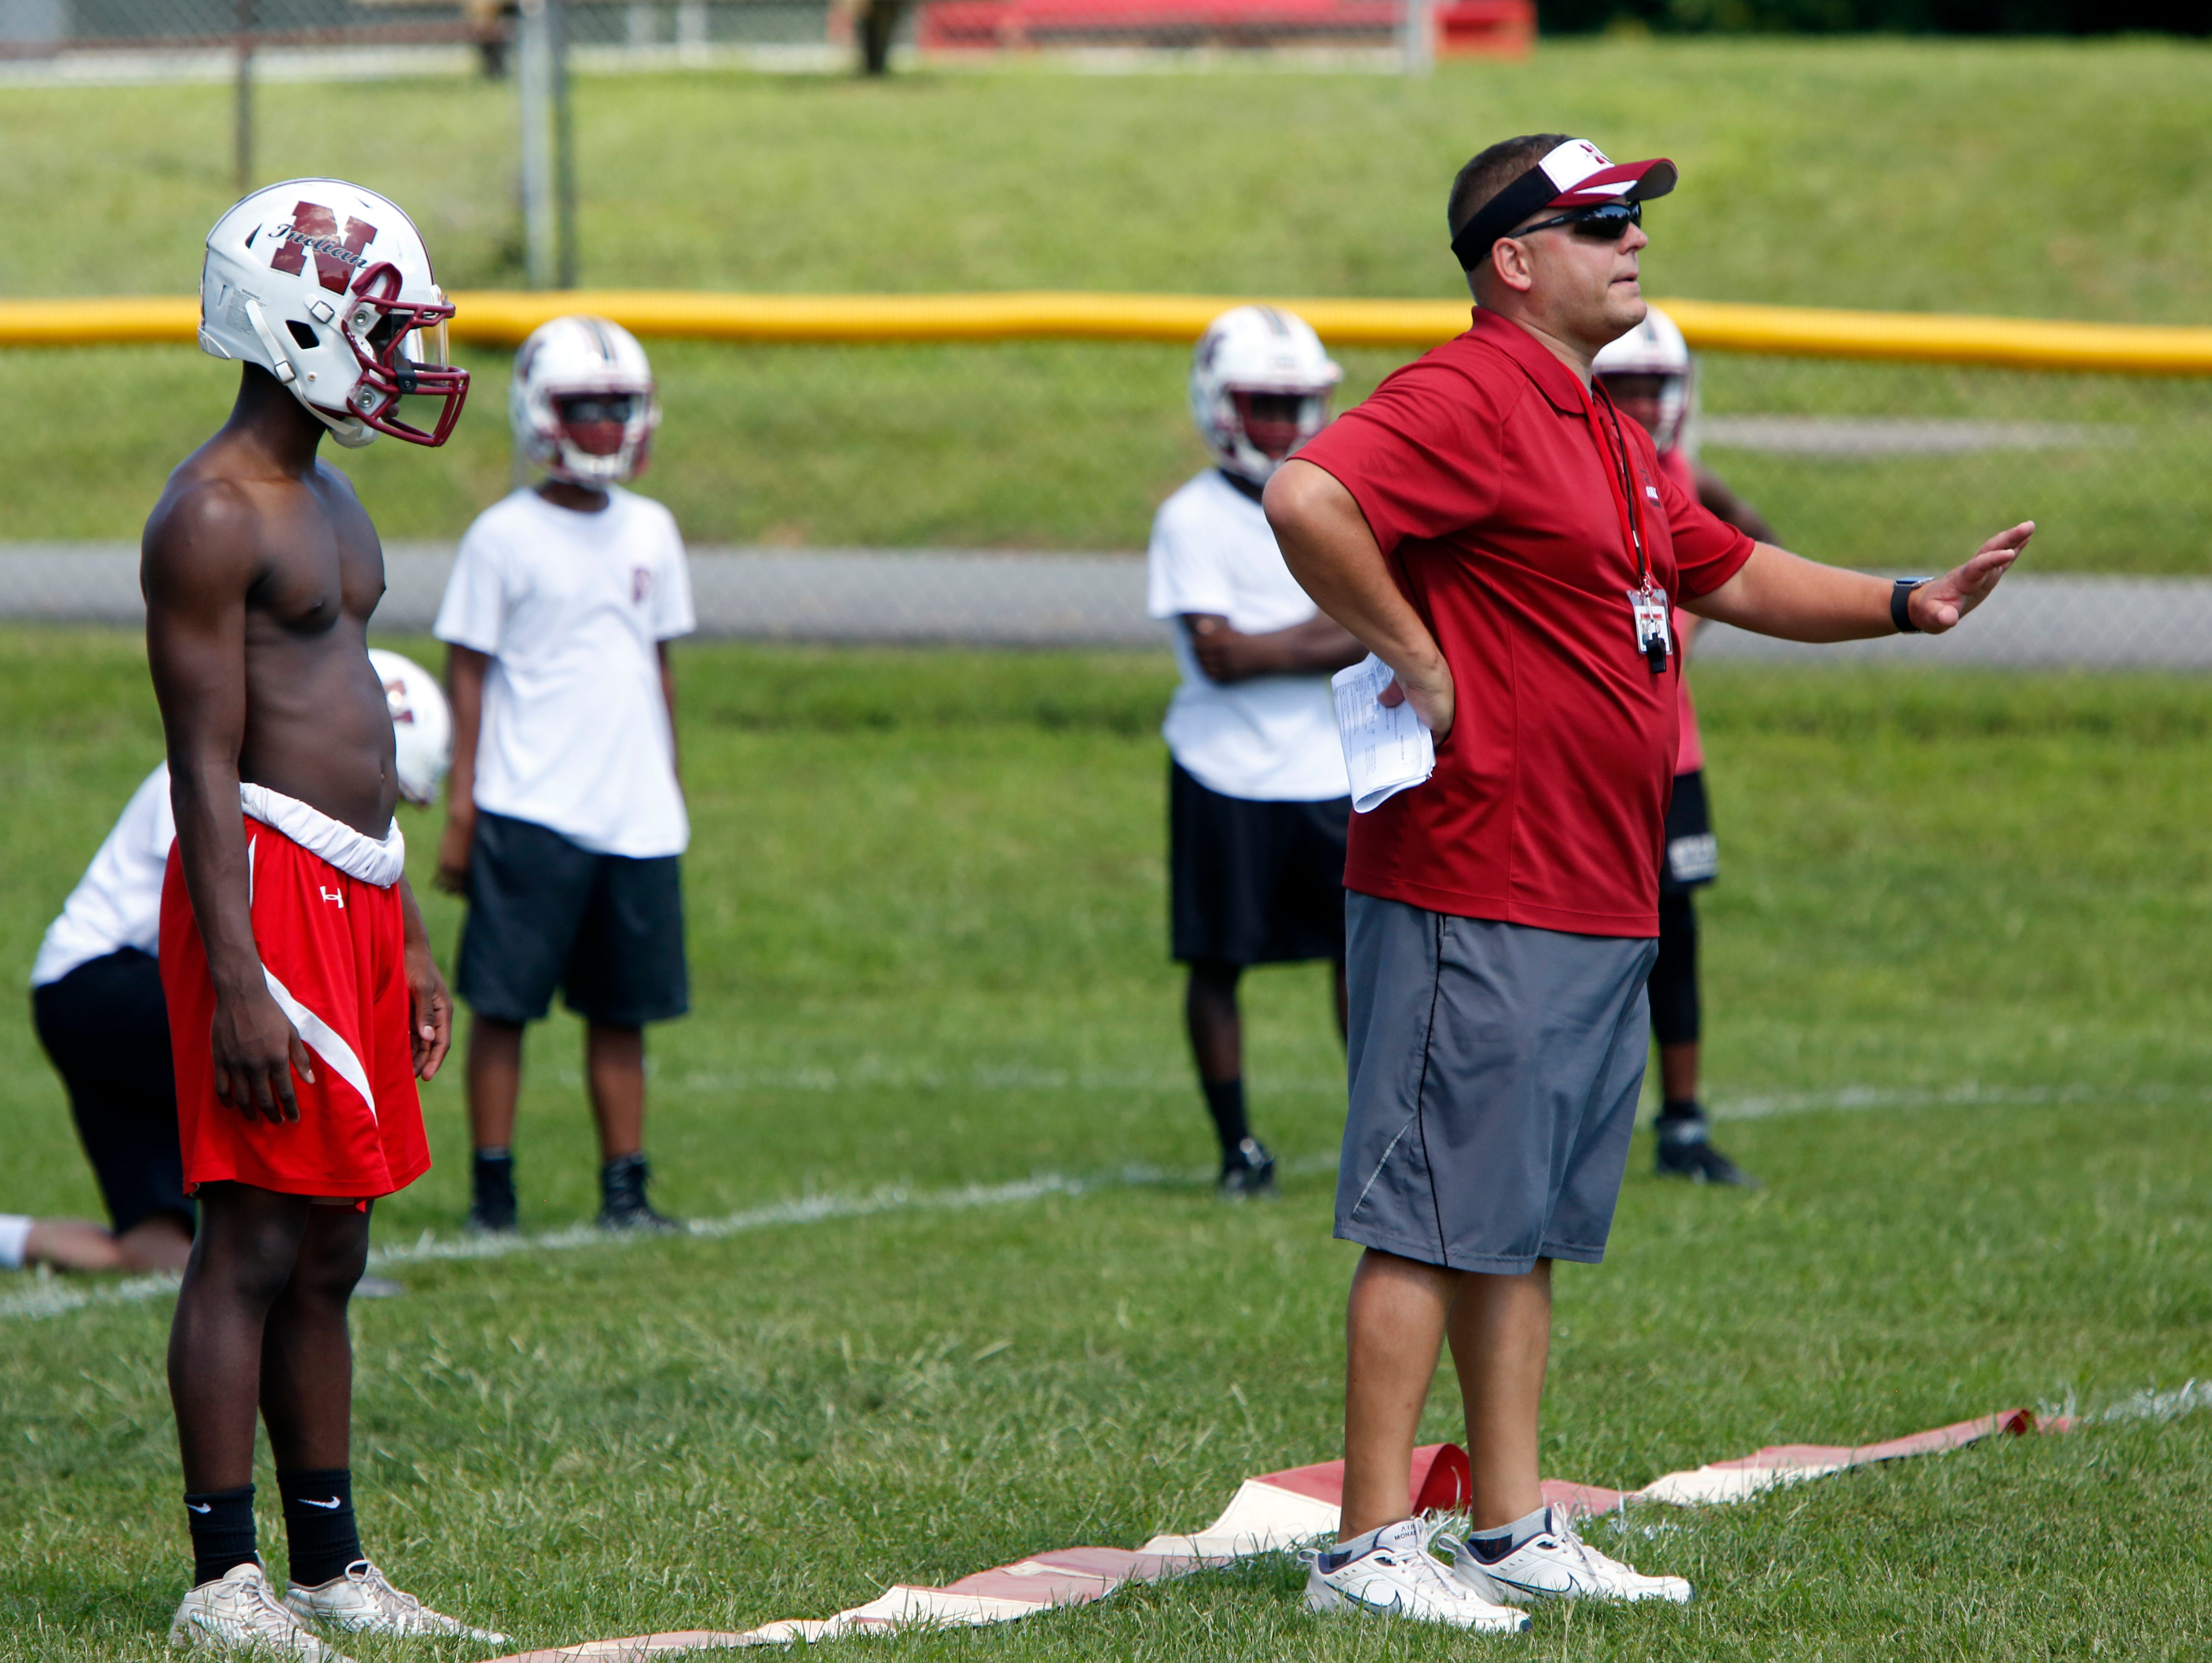 Dominick DeMatteo, Nyack's new football coach, leads the first day of football practice Aug. 15, 2016 at Nyack Middle School.